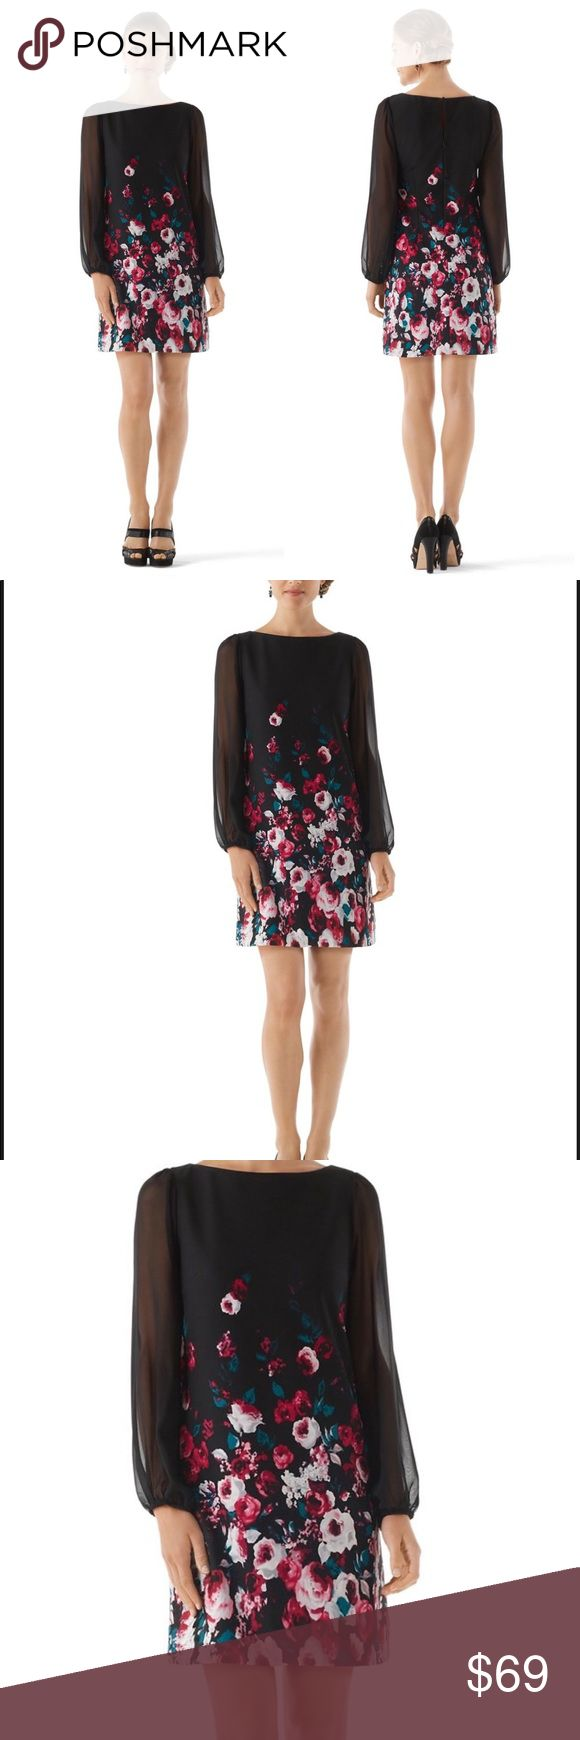 WHBM Chiffon Long Sleeve Floral Shift Dress Sz 2  NWT  White House Black Market Chiffon Sleeve Floral Shift Dress Stretch crepe jersey dress blossoms at social occasions, in a floral print of pinks and Lotus teal tumbling from solid black. Long sleeves in shear chiffon blouse romantically gathered at the wrist. Shell: 100% Polyester. Lining: 92/8 Poly/Spandex.  Slightly contoured silhouette  Bateau neckline. Looped covered button in back with keyhole placket above a concealed zip with…